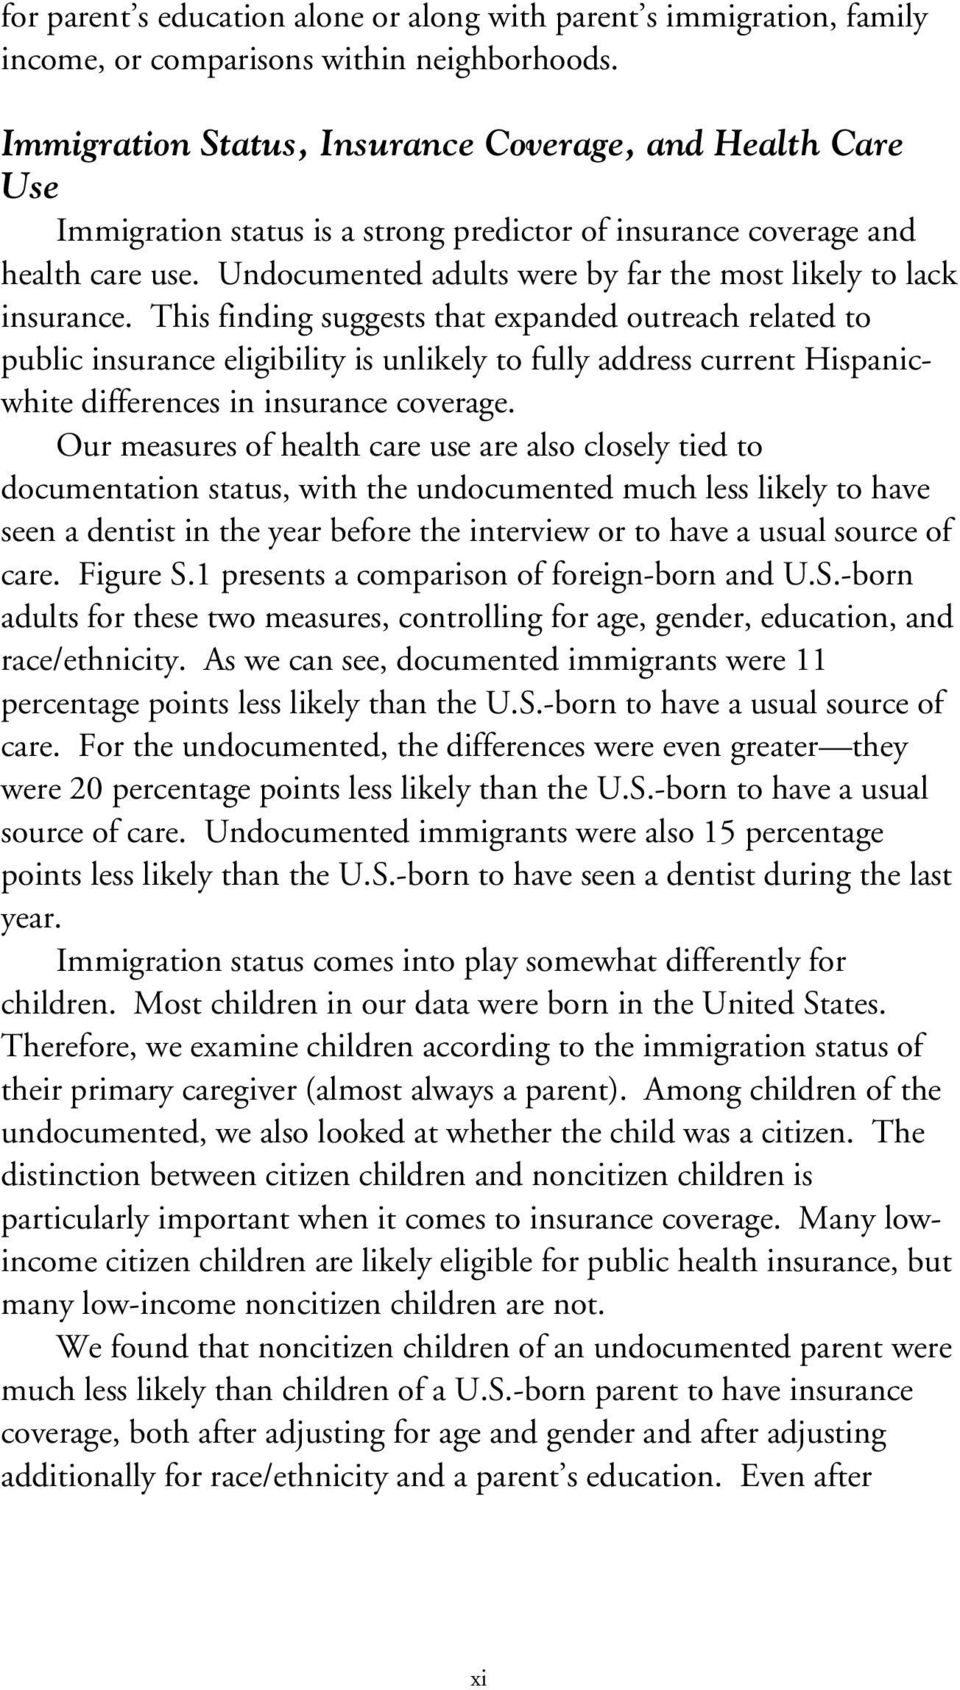 Undocumented adults were by far the most likely to lack insurance.